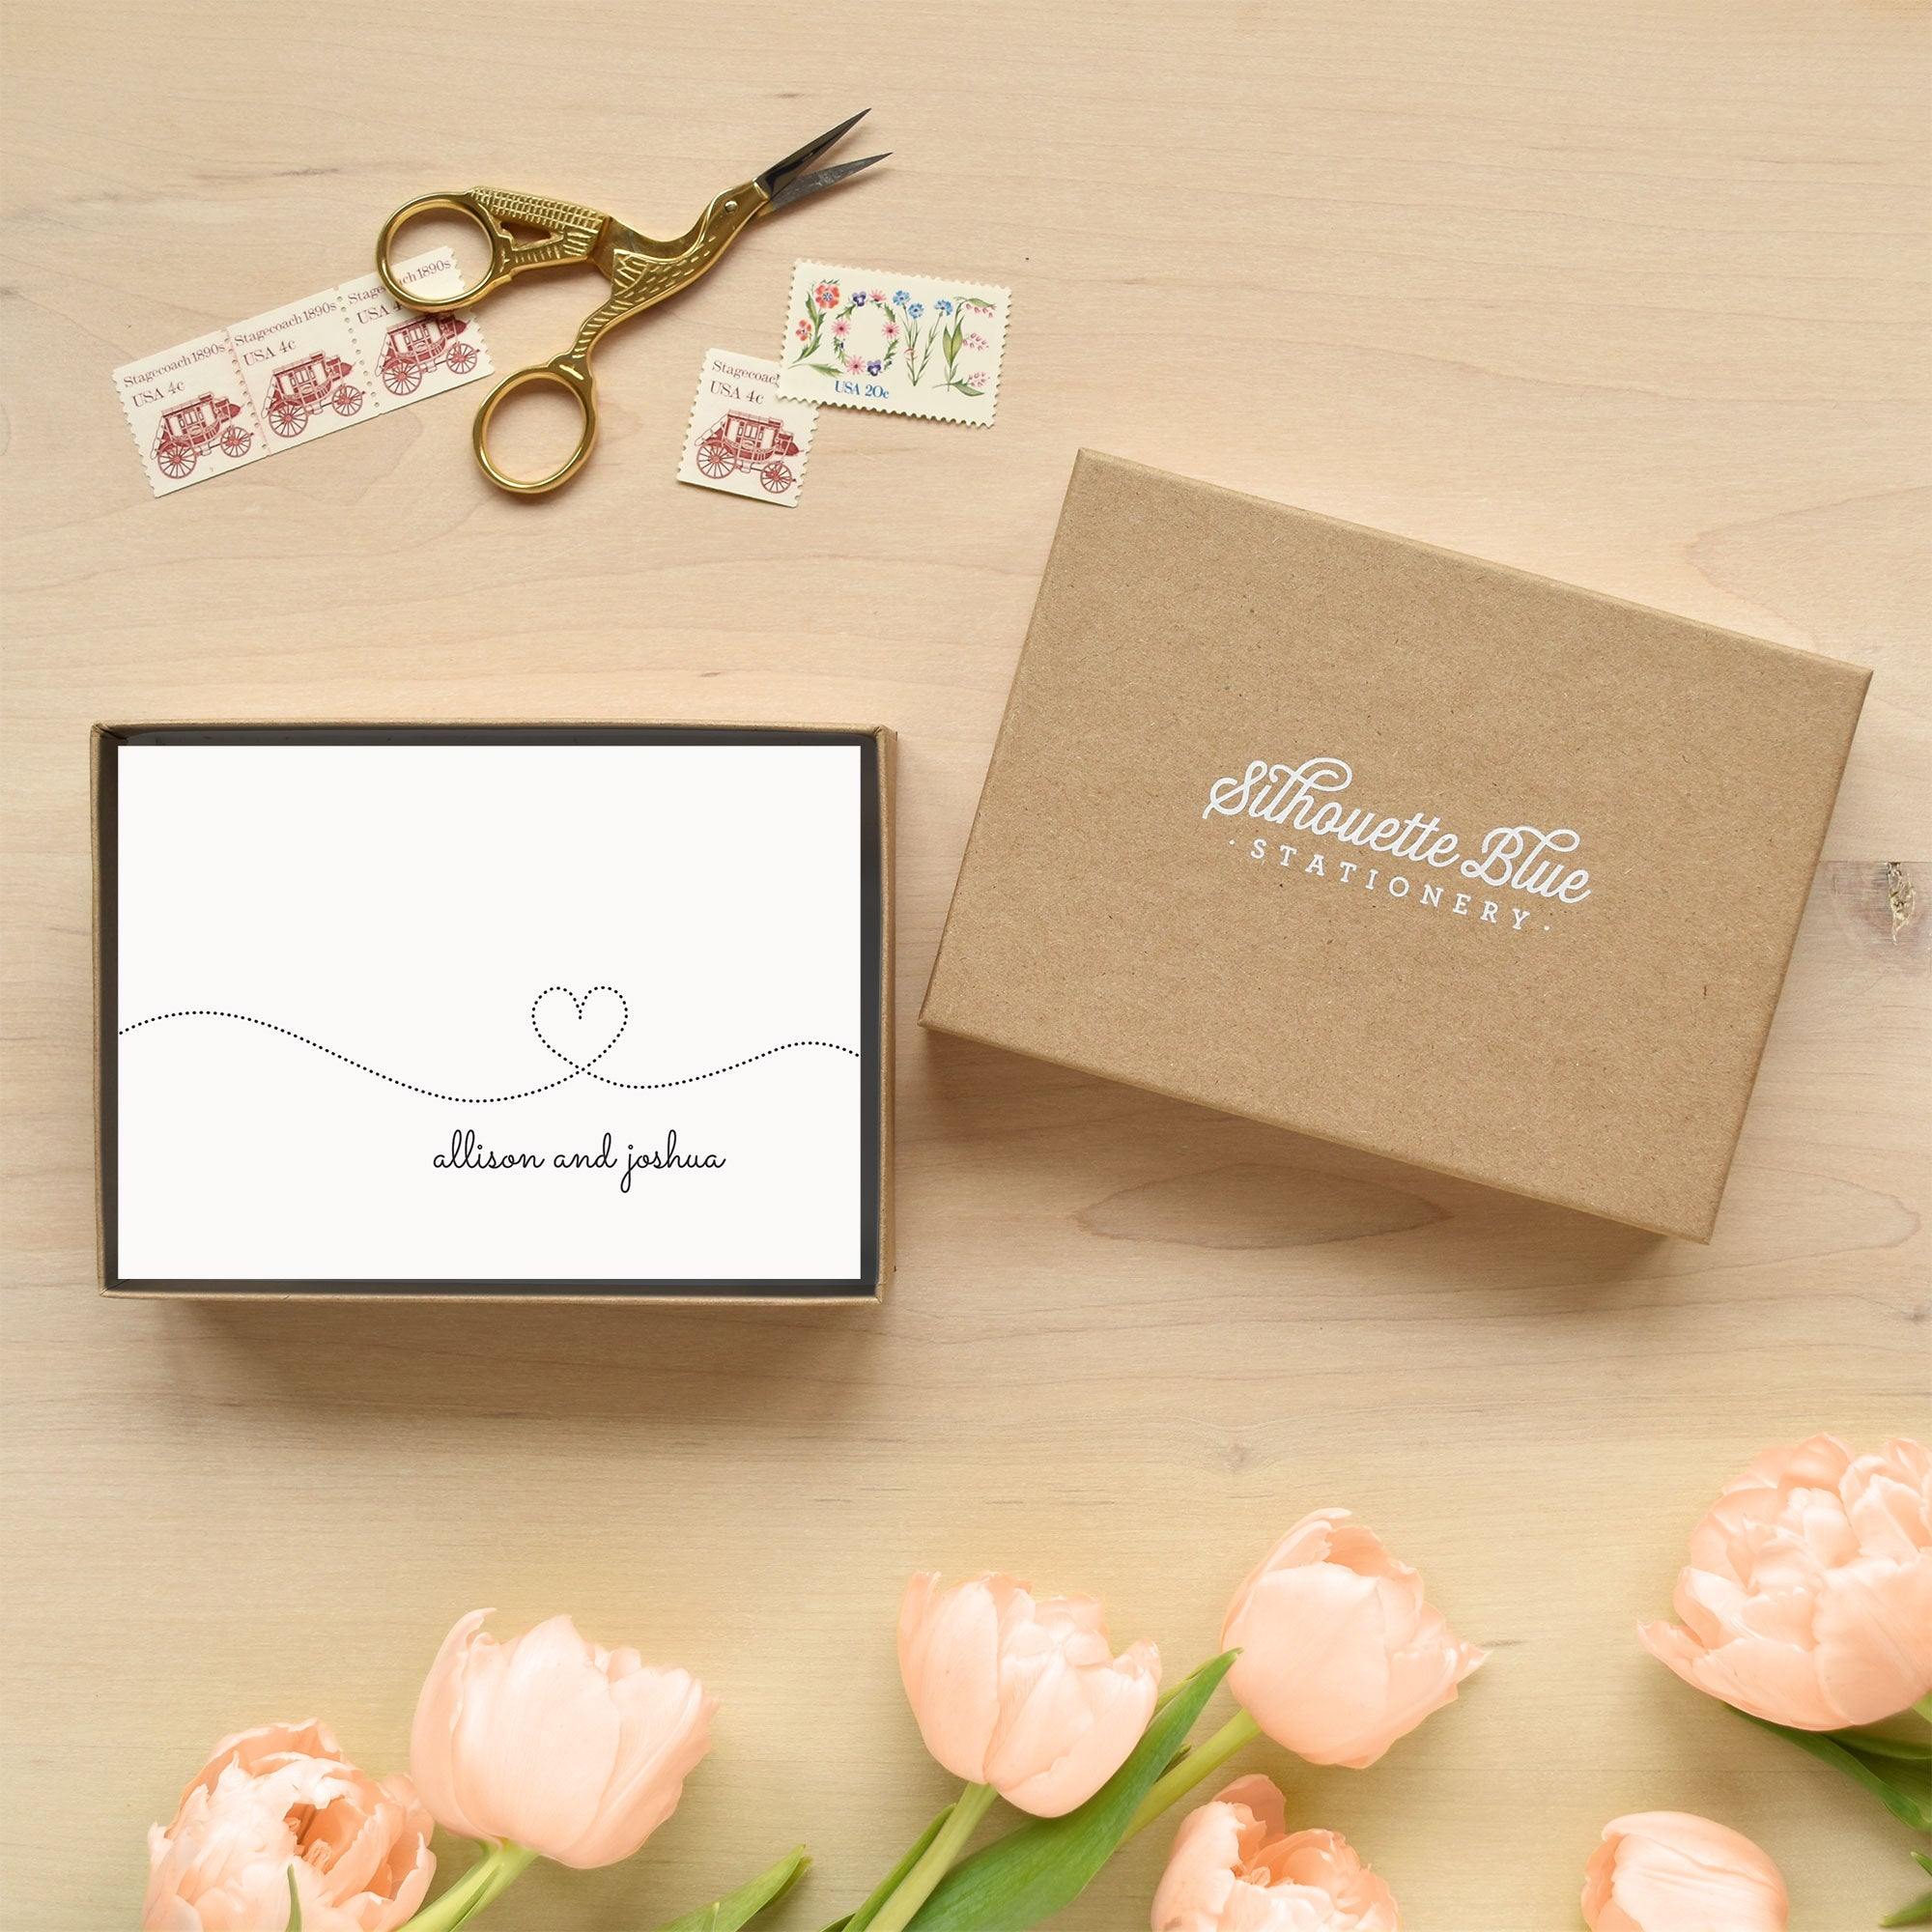 Smitten Personalized Stationery